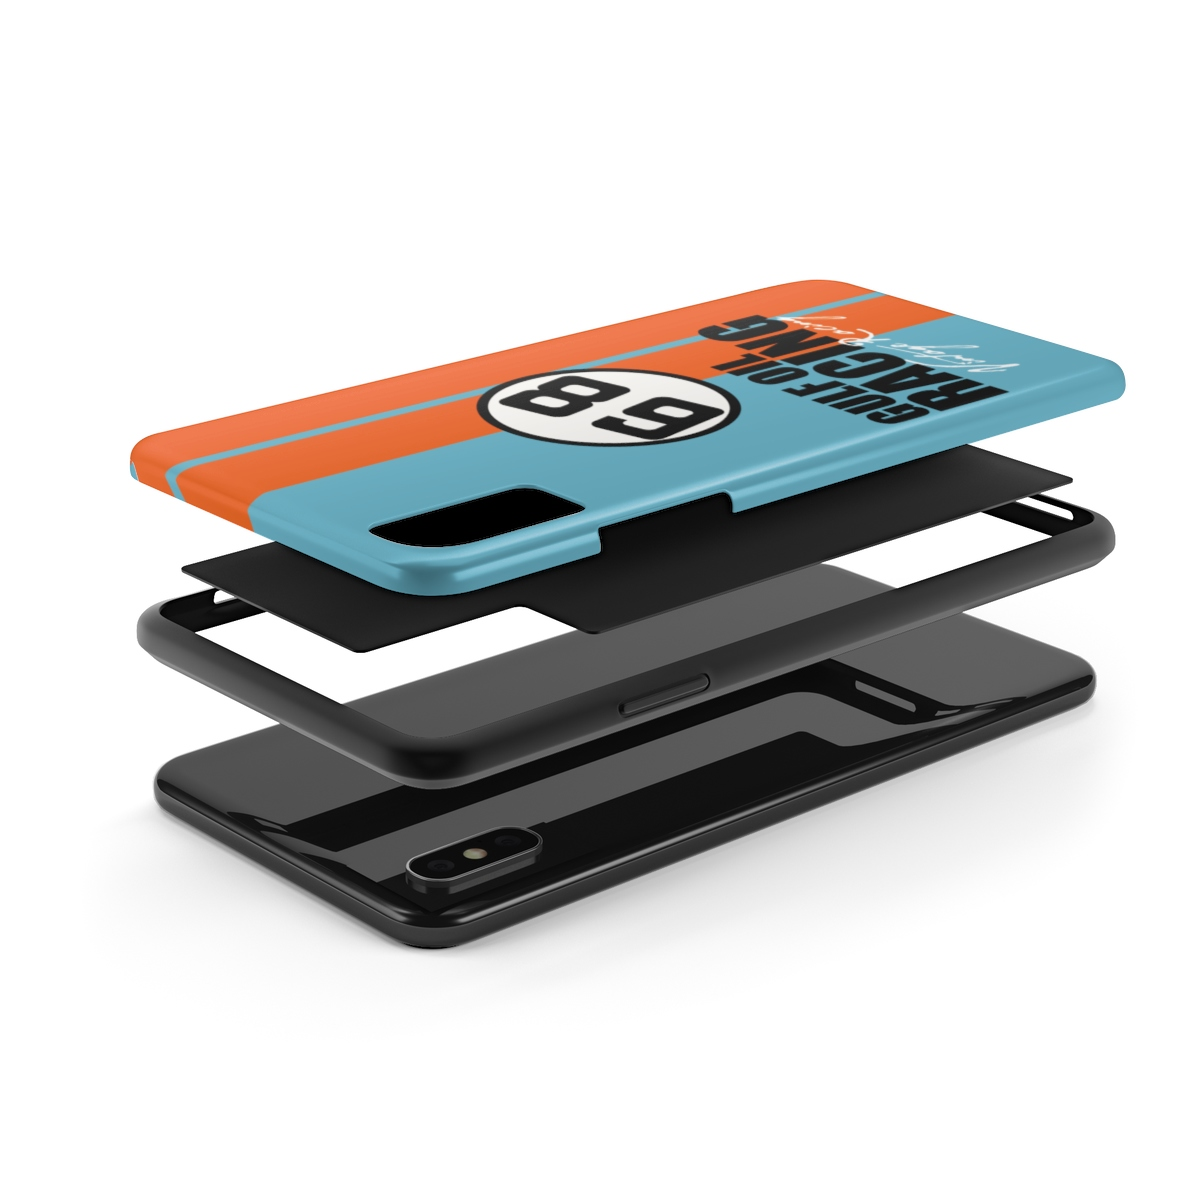 Gulf Racing Phone Case Featuring Gulf Oil Colors For Iphone And Galaxy Phones Bombay Aircraft Co Vintage Warplanes